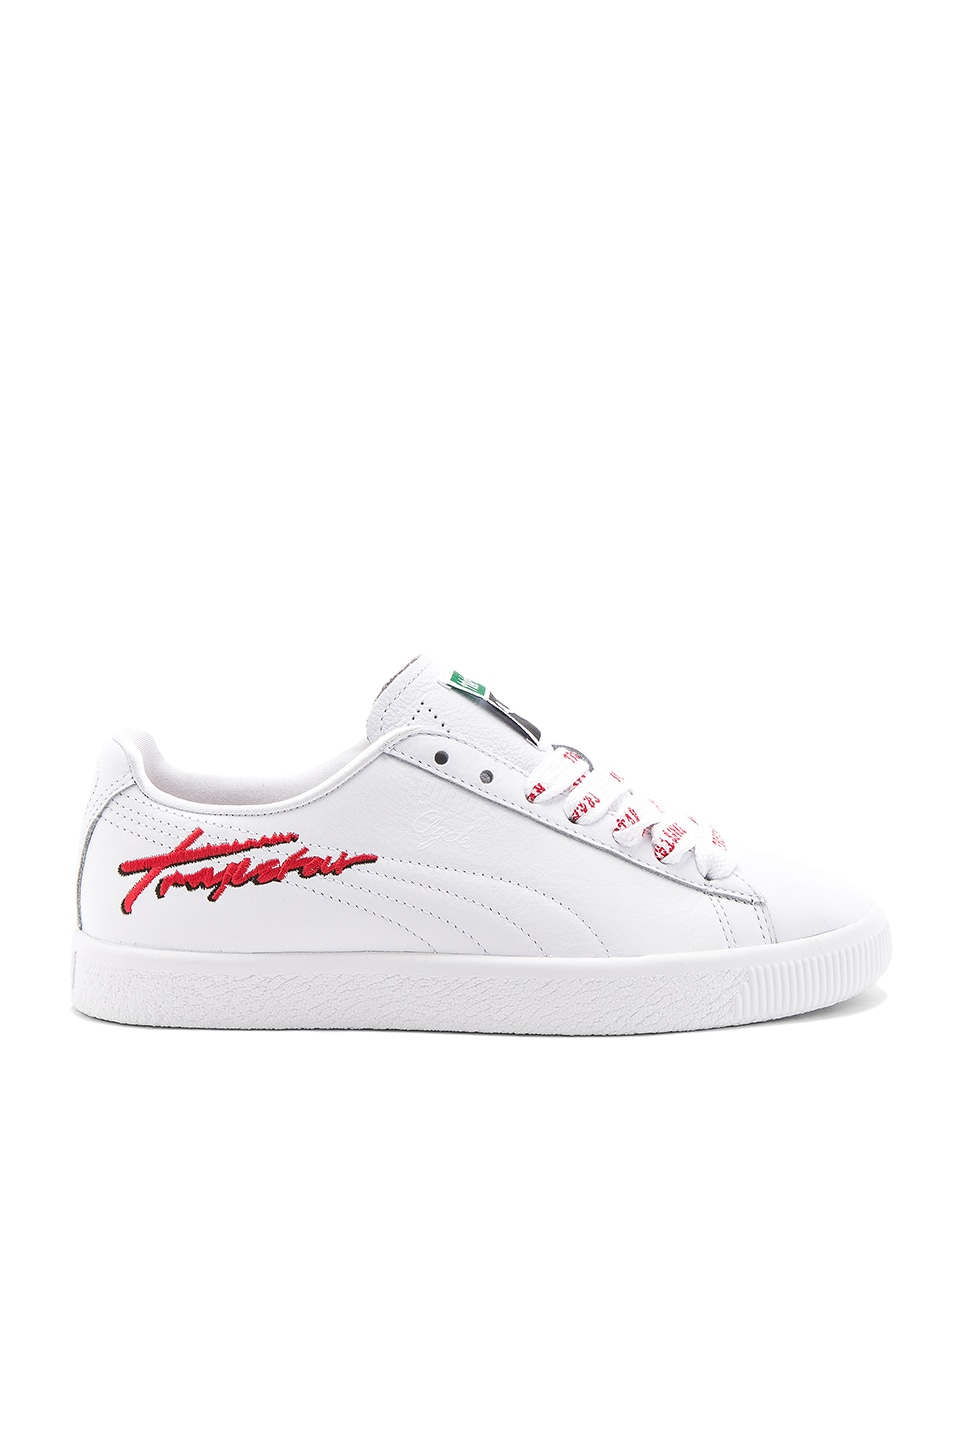 x Trapstar Clyde by Puma Select